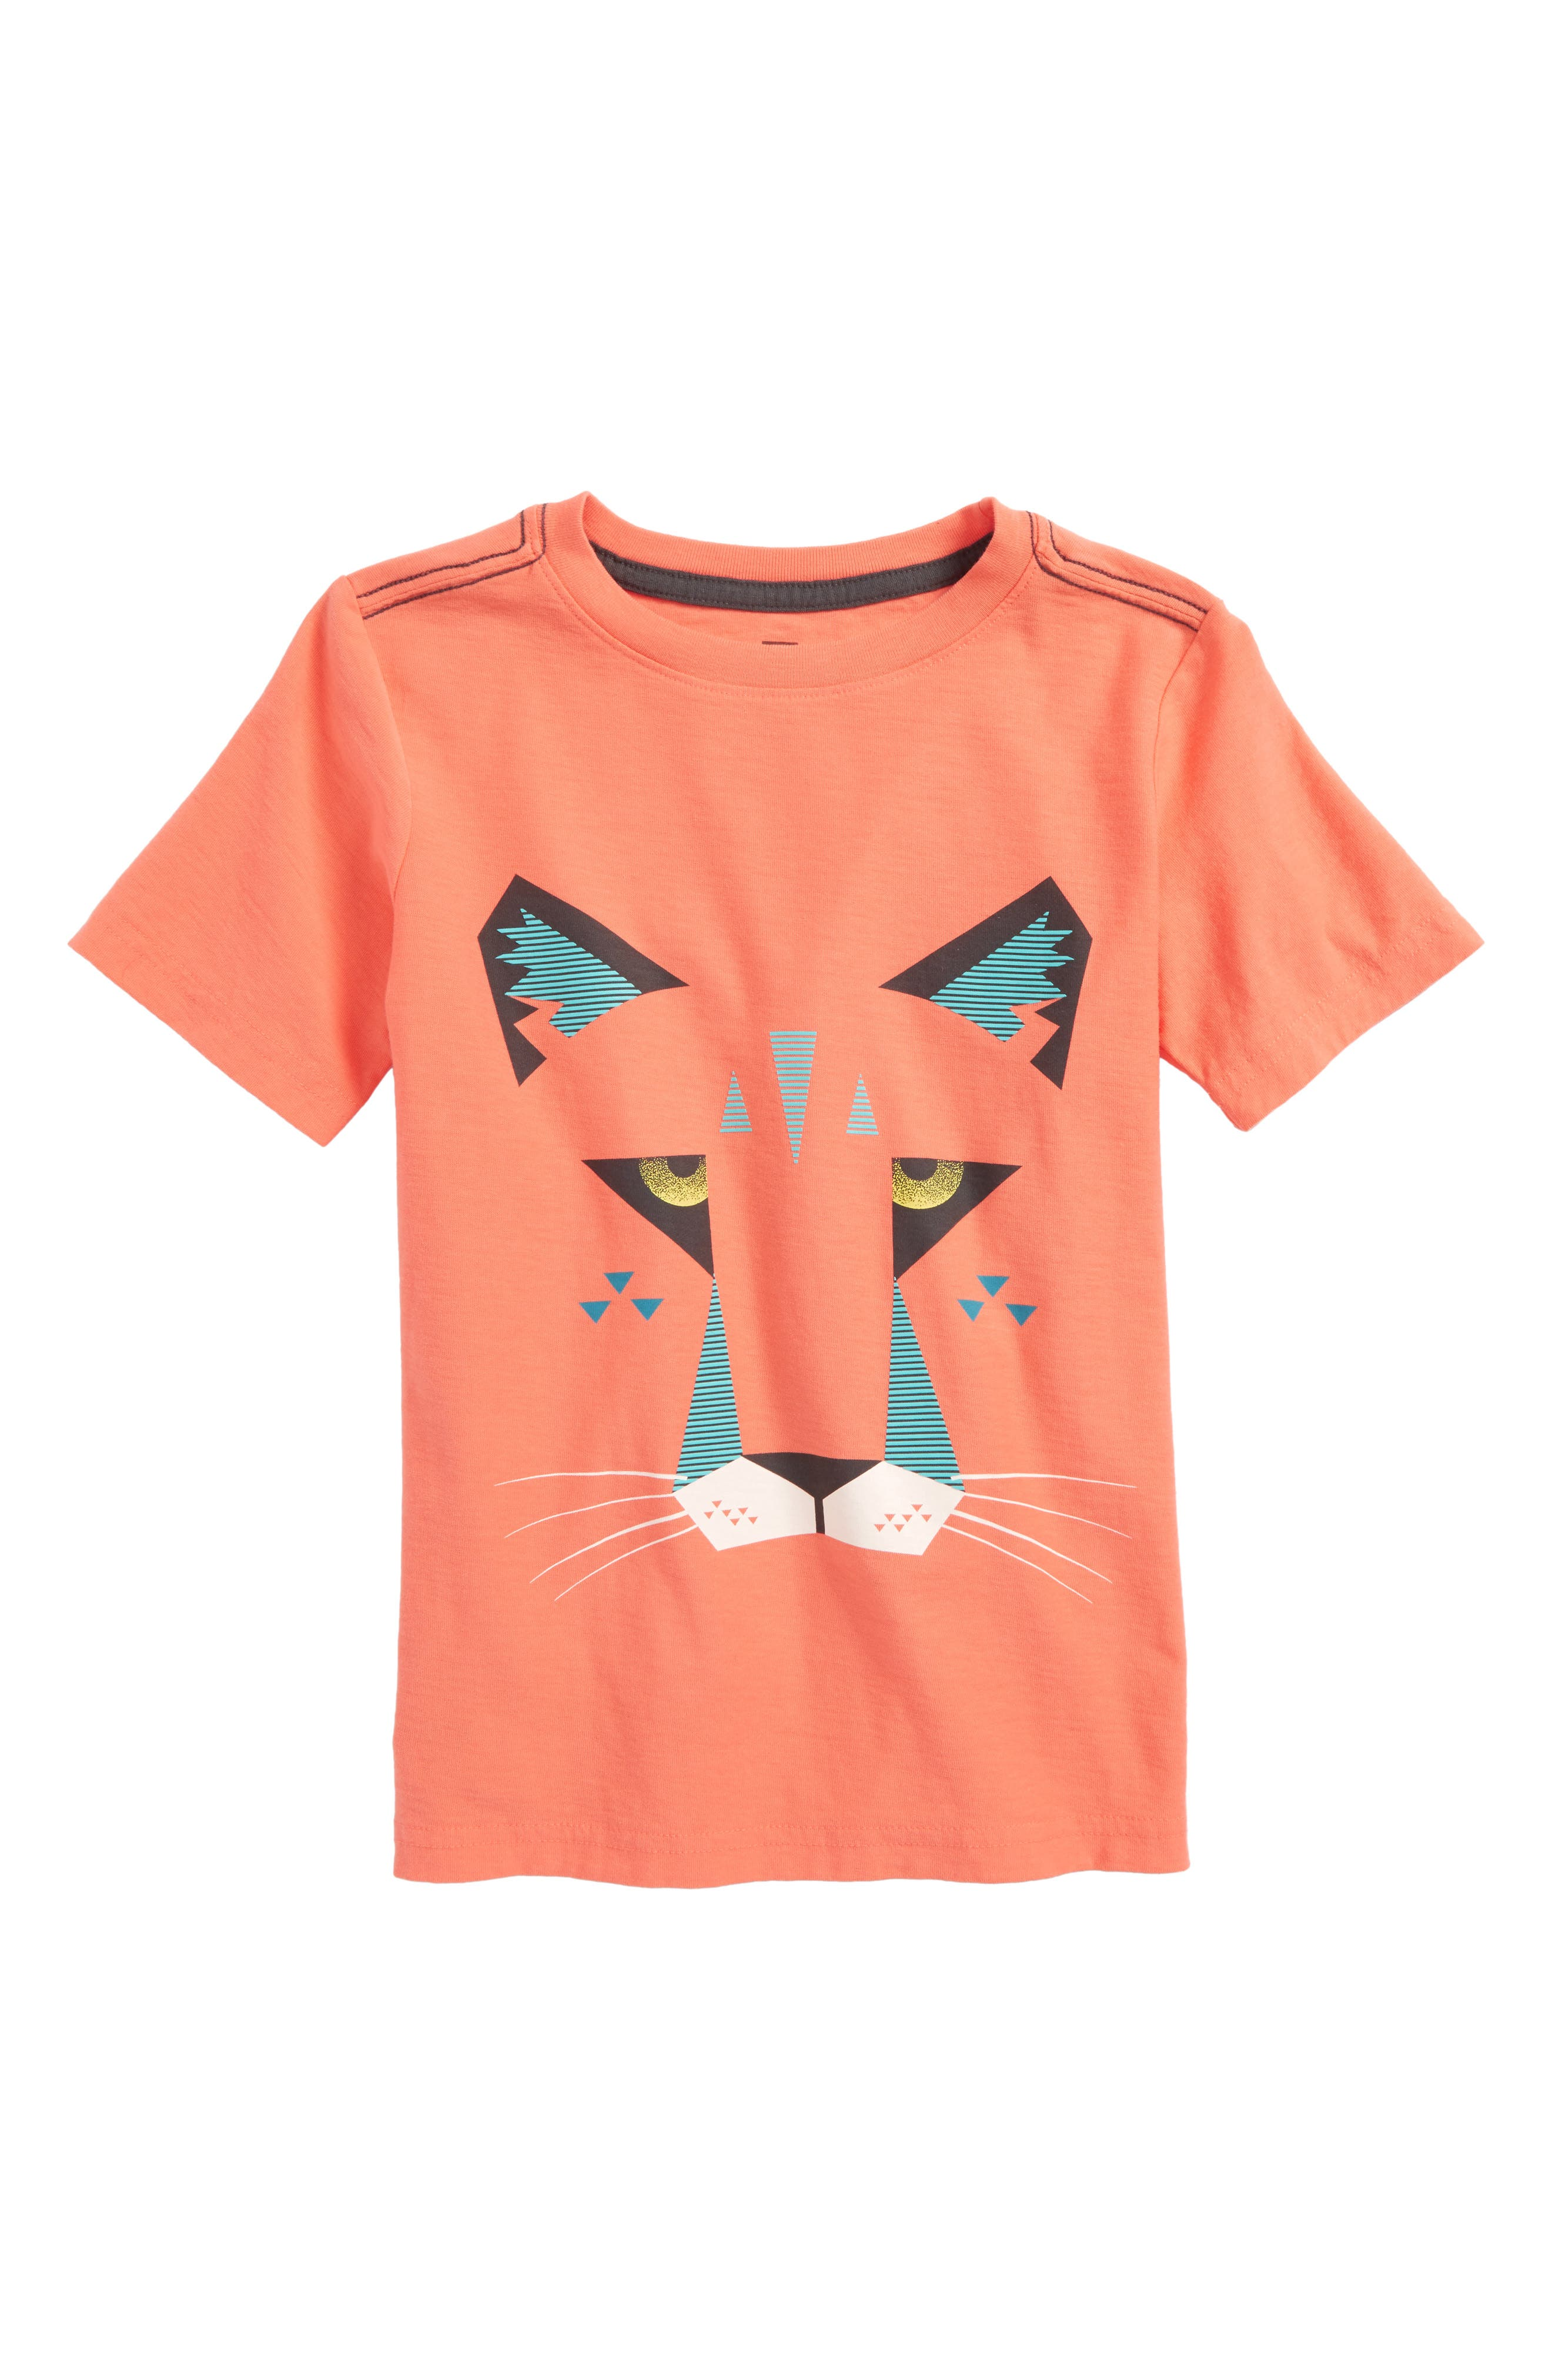 Tea Collection Florida Panther Graphic T-Shirt (Toddler Boys & Little Boys)